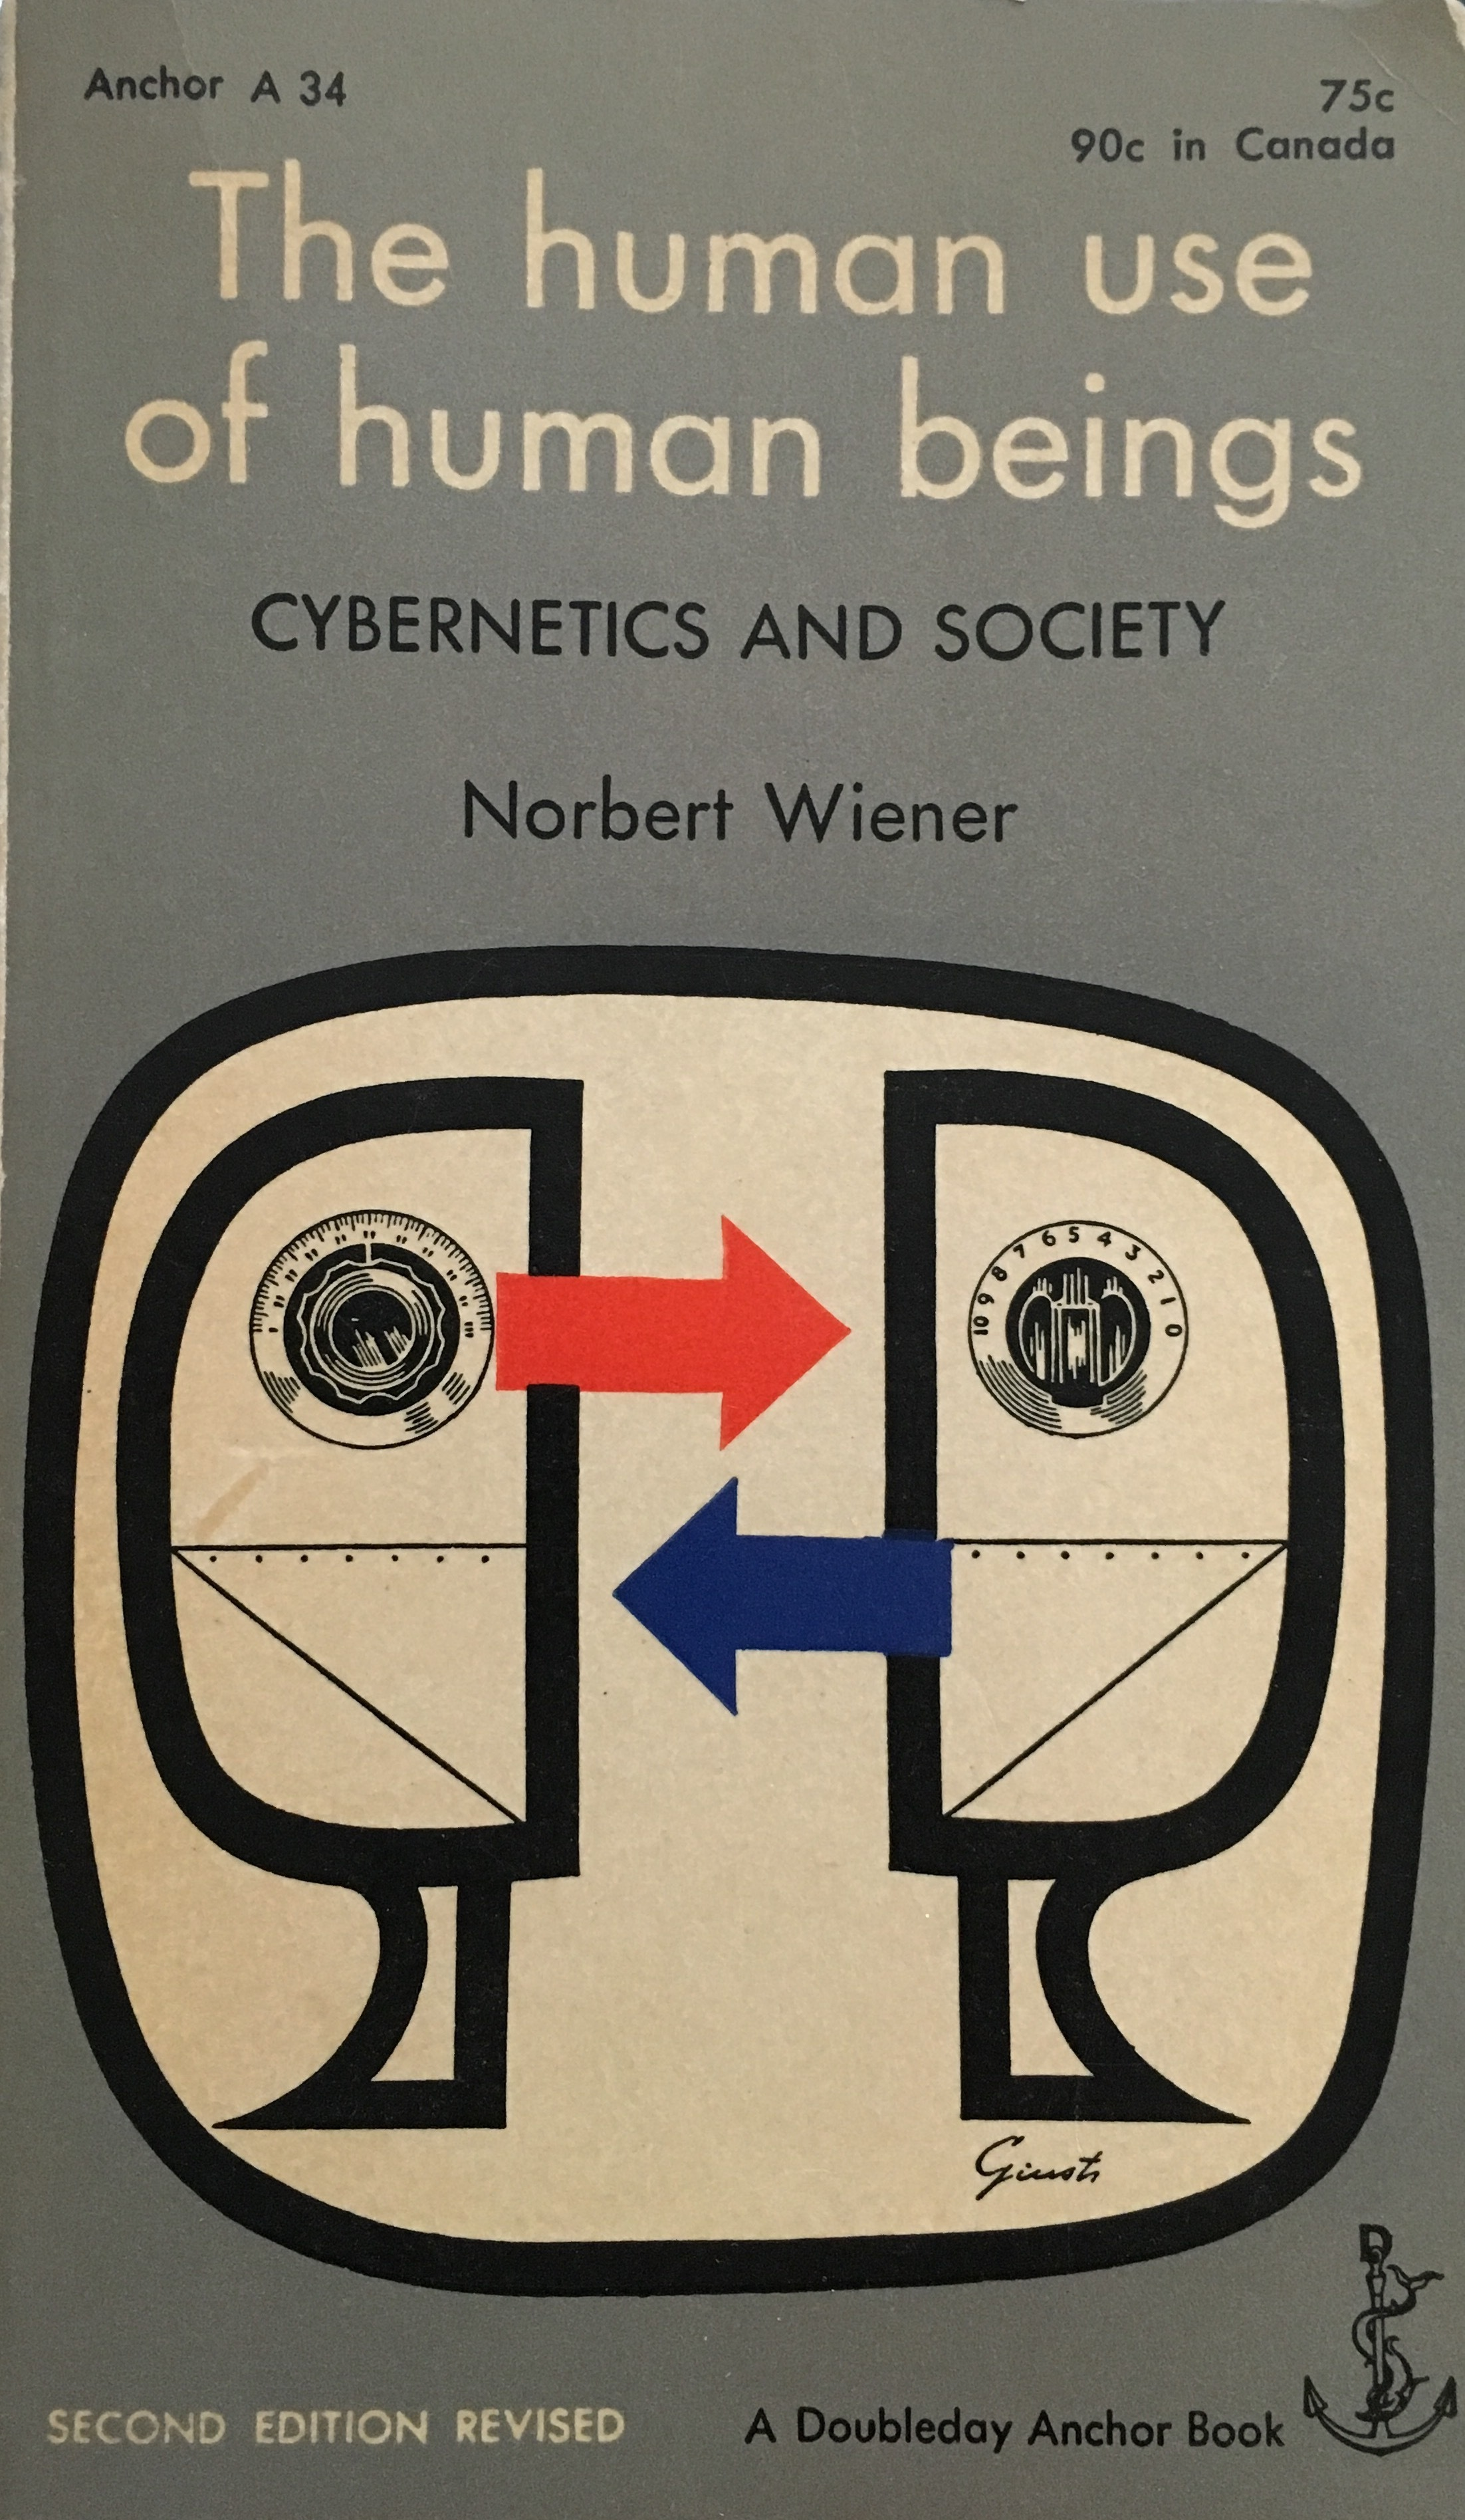 Gordon Pask Wiener Medalist worked all his life with charm and great care to bring Cybernetics into the mainstream